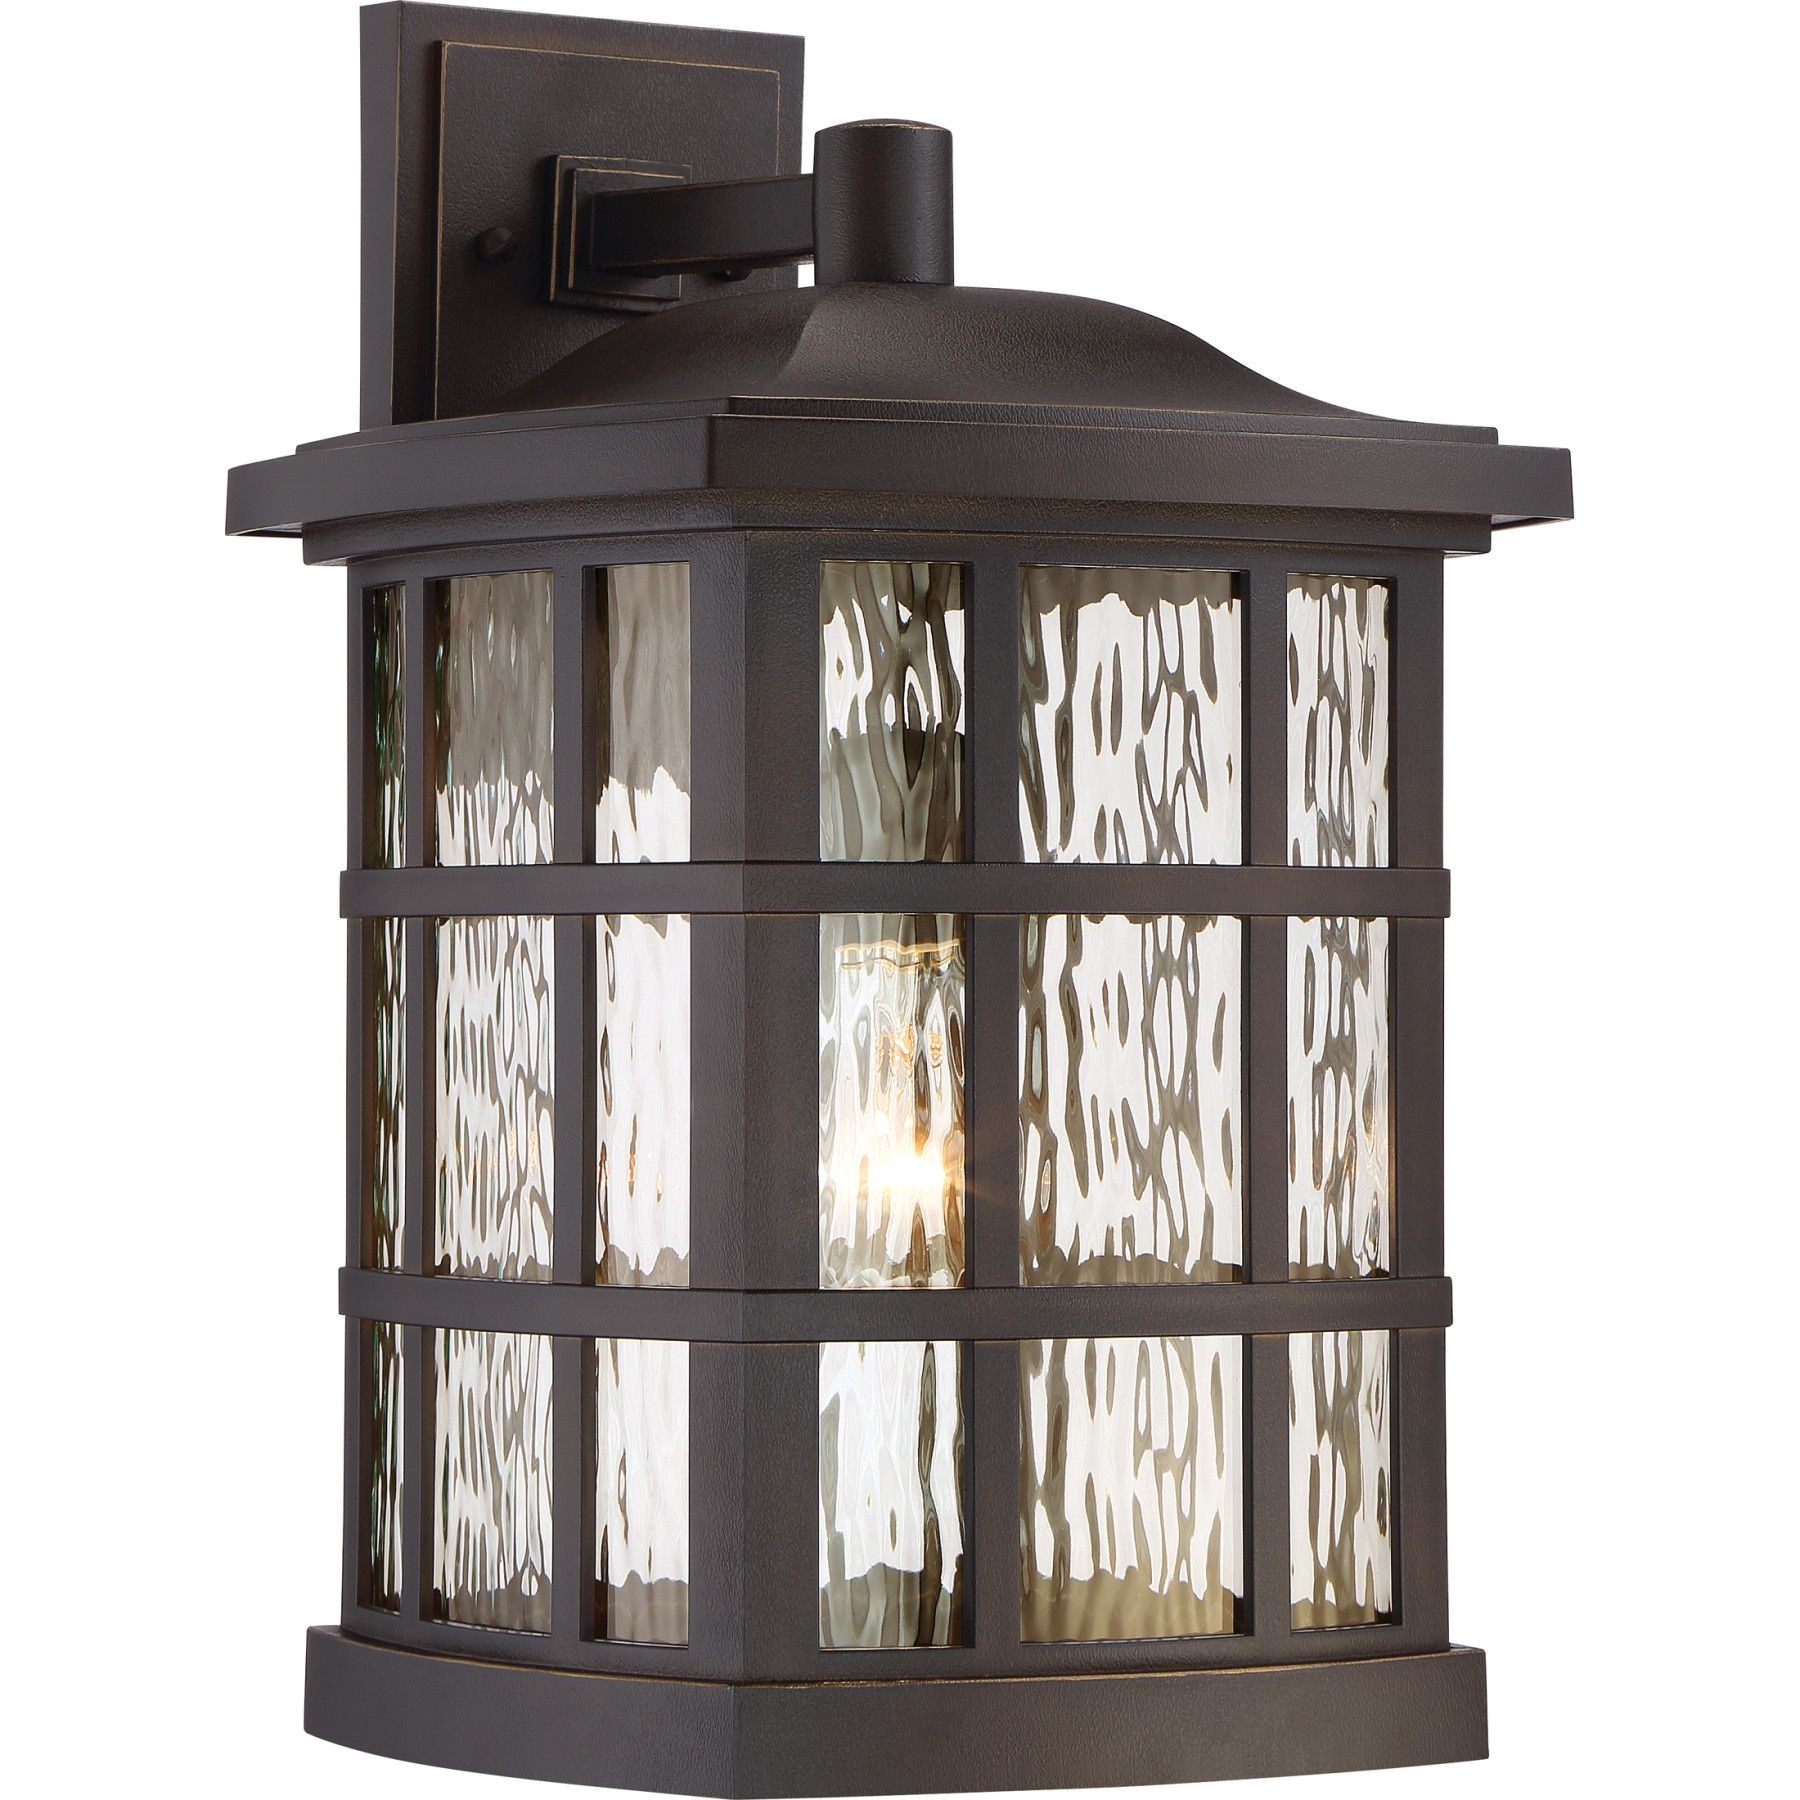 Quoizel SNN8411PN Stonington Outdoor Sconce in Palladian Bronze with Clear Water Glass